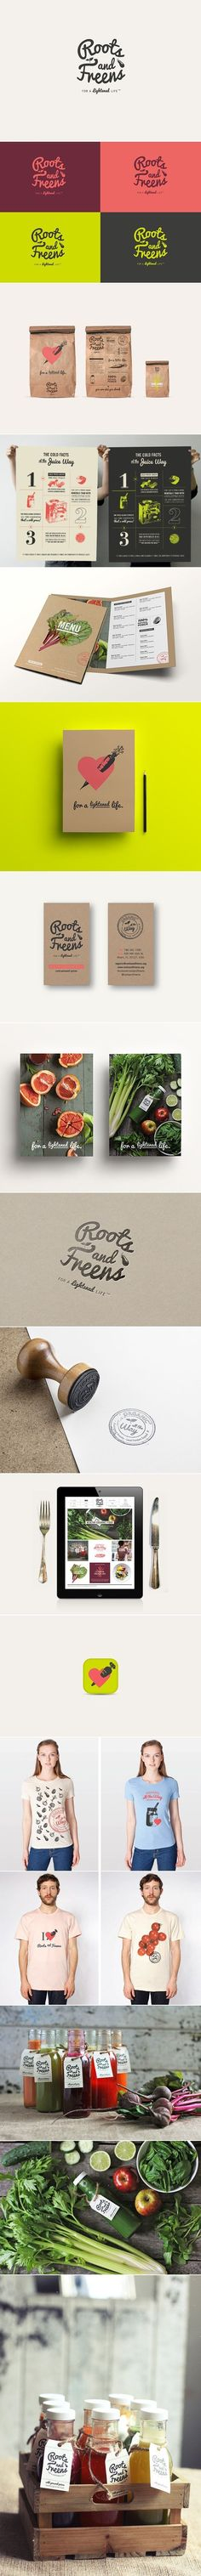 Unique branding design. Roots and Freens.